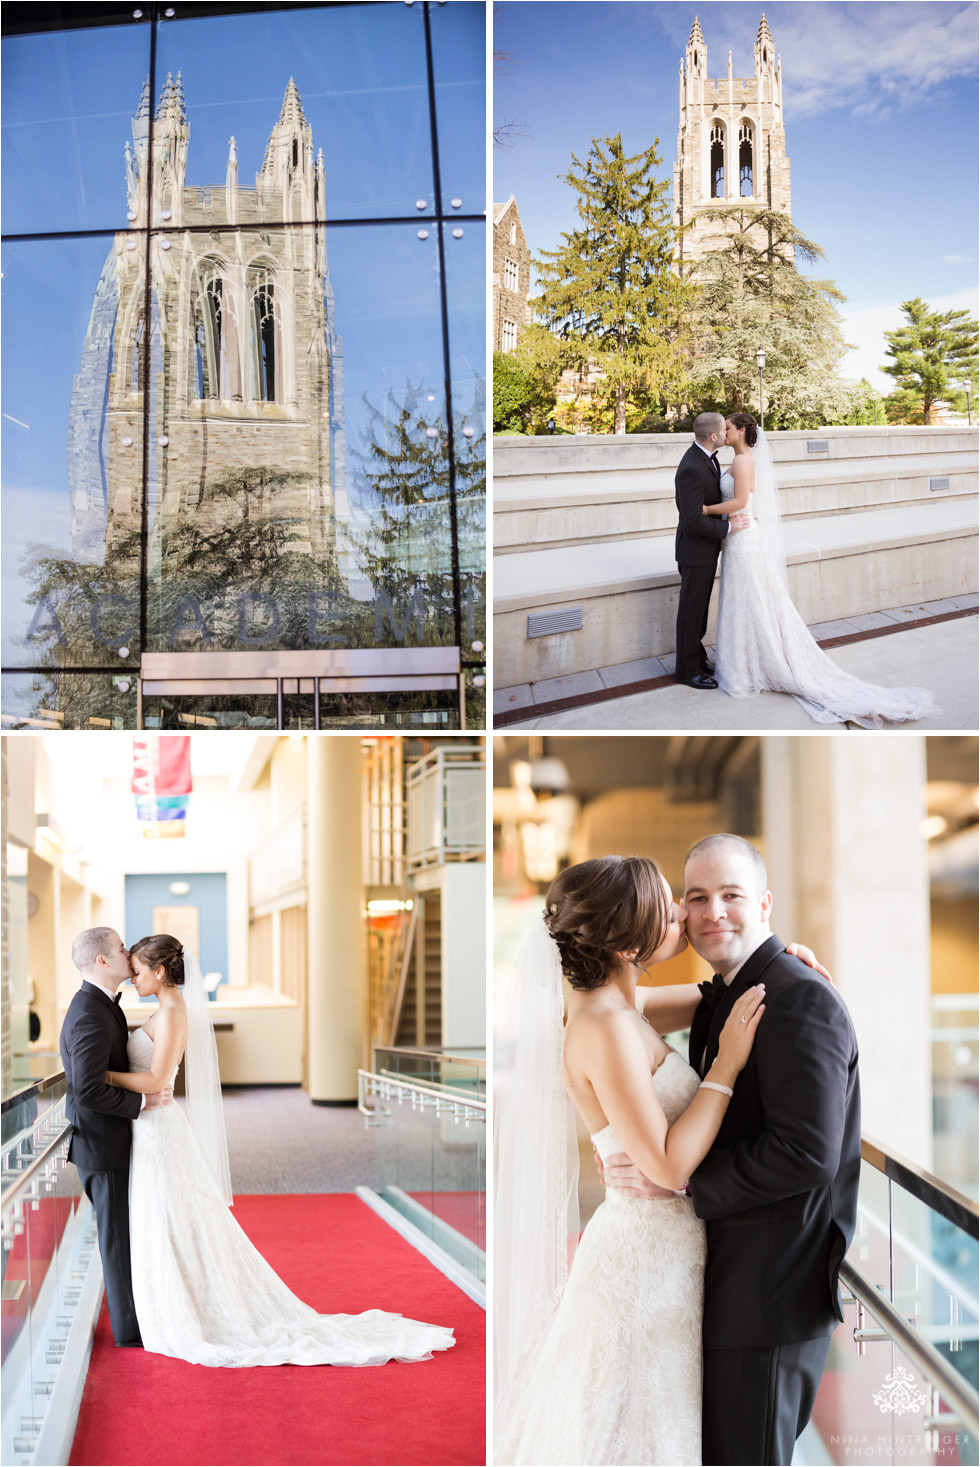 Bridal and groom at Saint Josephs University campus in Philadelphia, Pennsylvania - Blog of Nina Hintringer Photography - Wedding Photography, Wedding Reportage and Destination Weddings